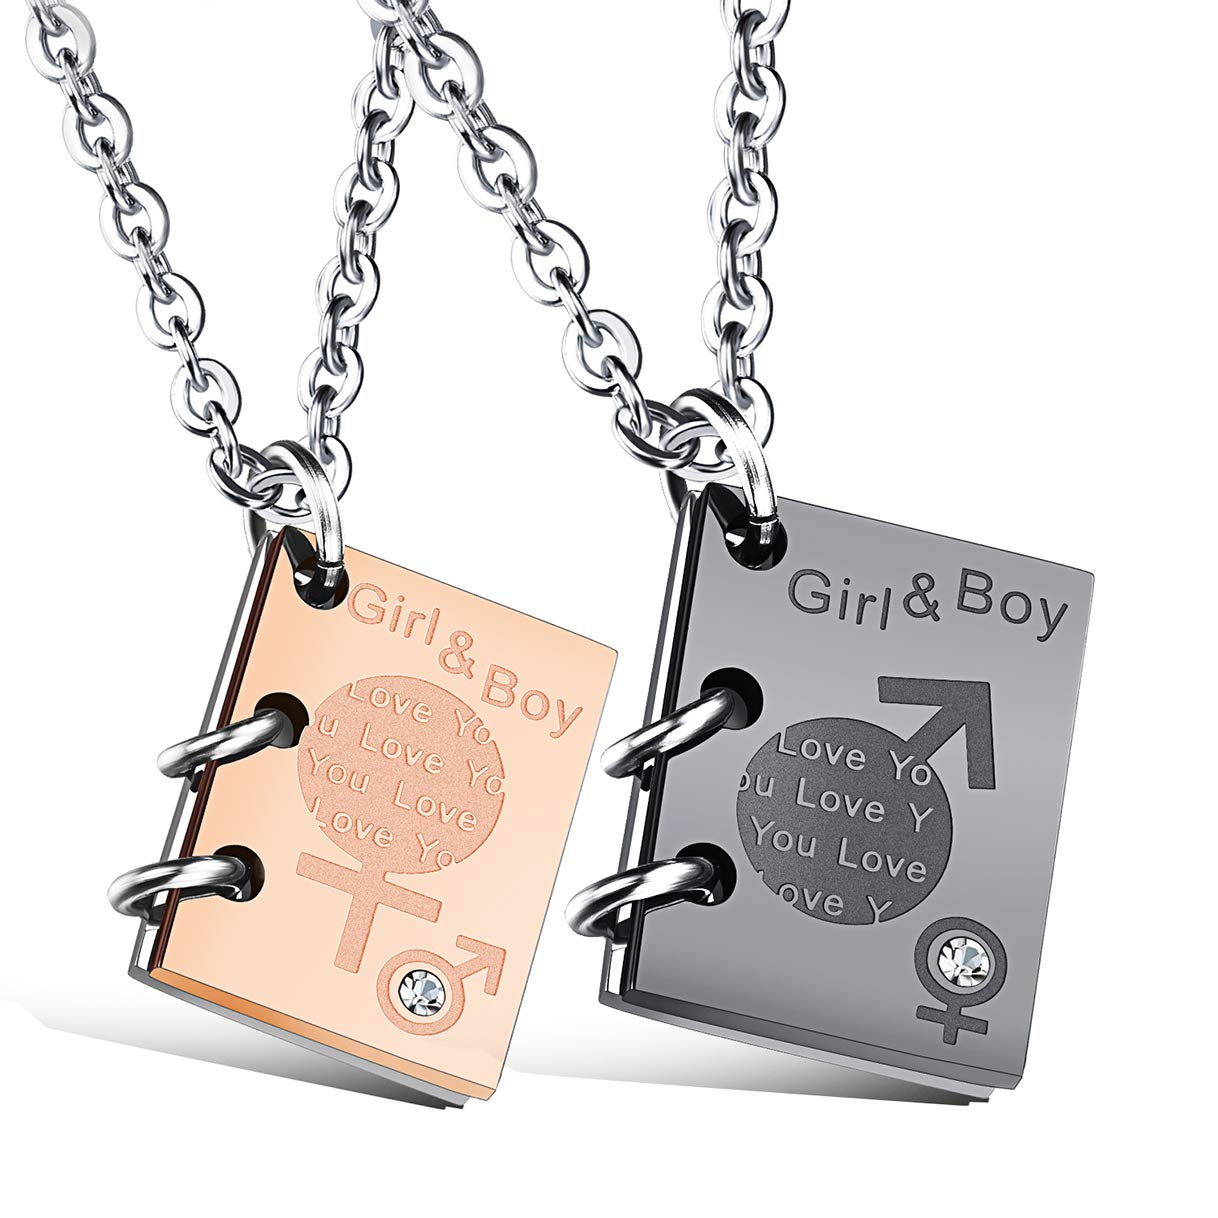 CHARMFAME 2 Pcs Book Couple Necklace Black /& Rose Gold Plated Stainless Steel Pendant Necklaces for Men /& Women